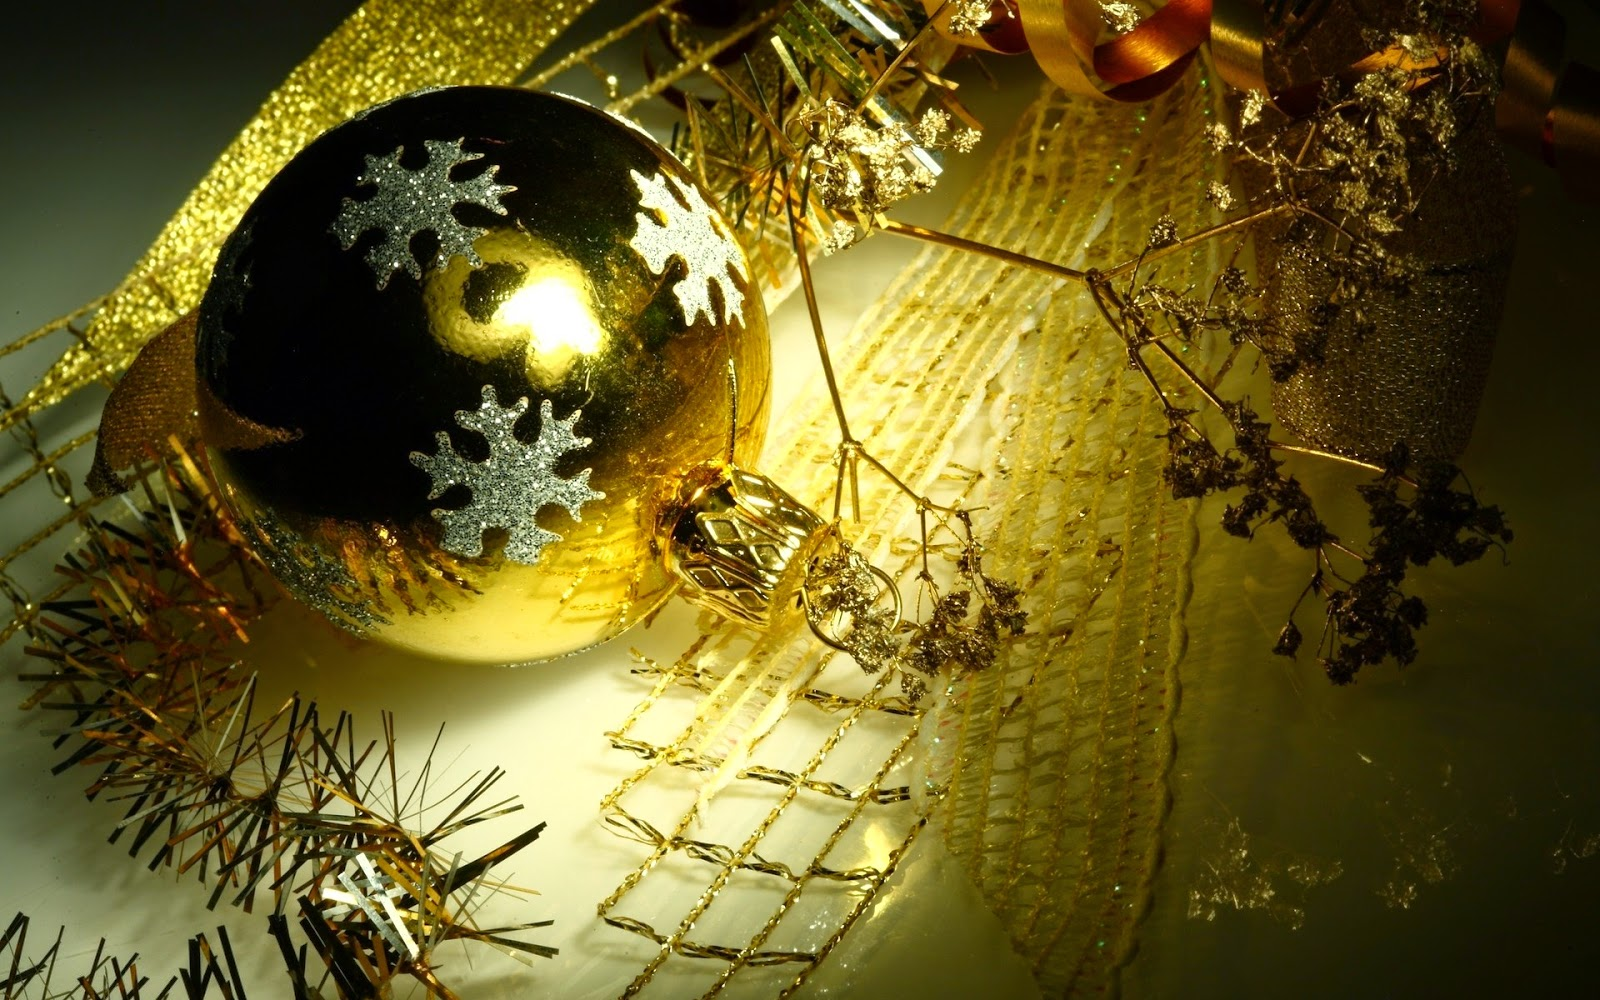 Golden-Christmas-baubles-balls-with-snow-flakes-decoration-HD-rich-looking-wallpaper-.jpg